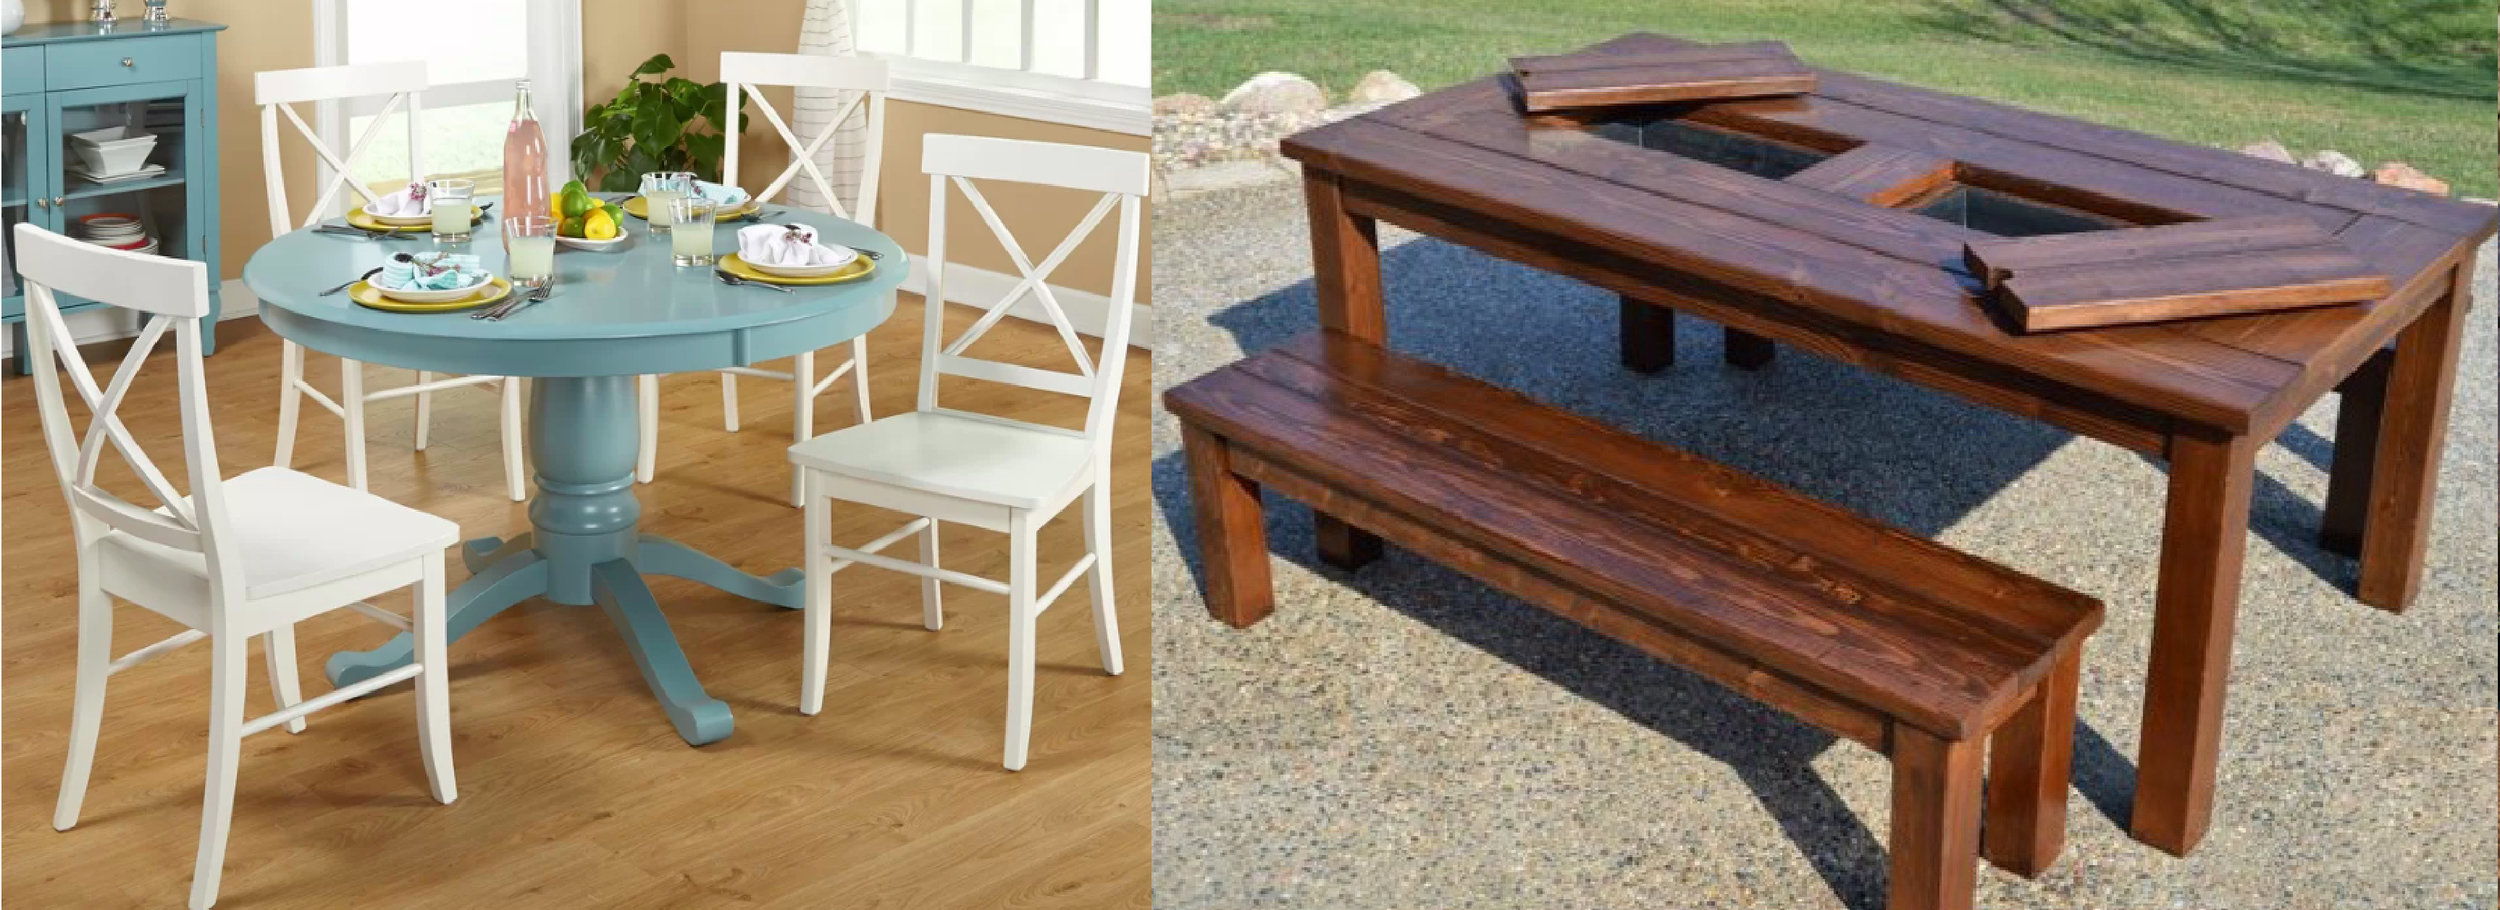 Purchase raffle tickets below to win one of these incredible tables - ONLY $5 EACH